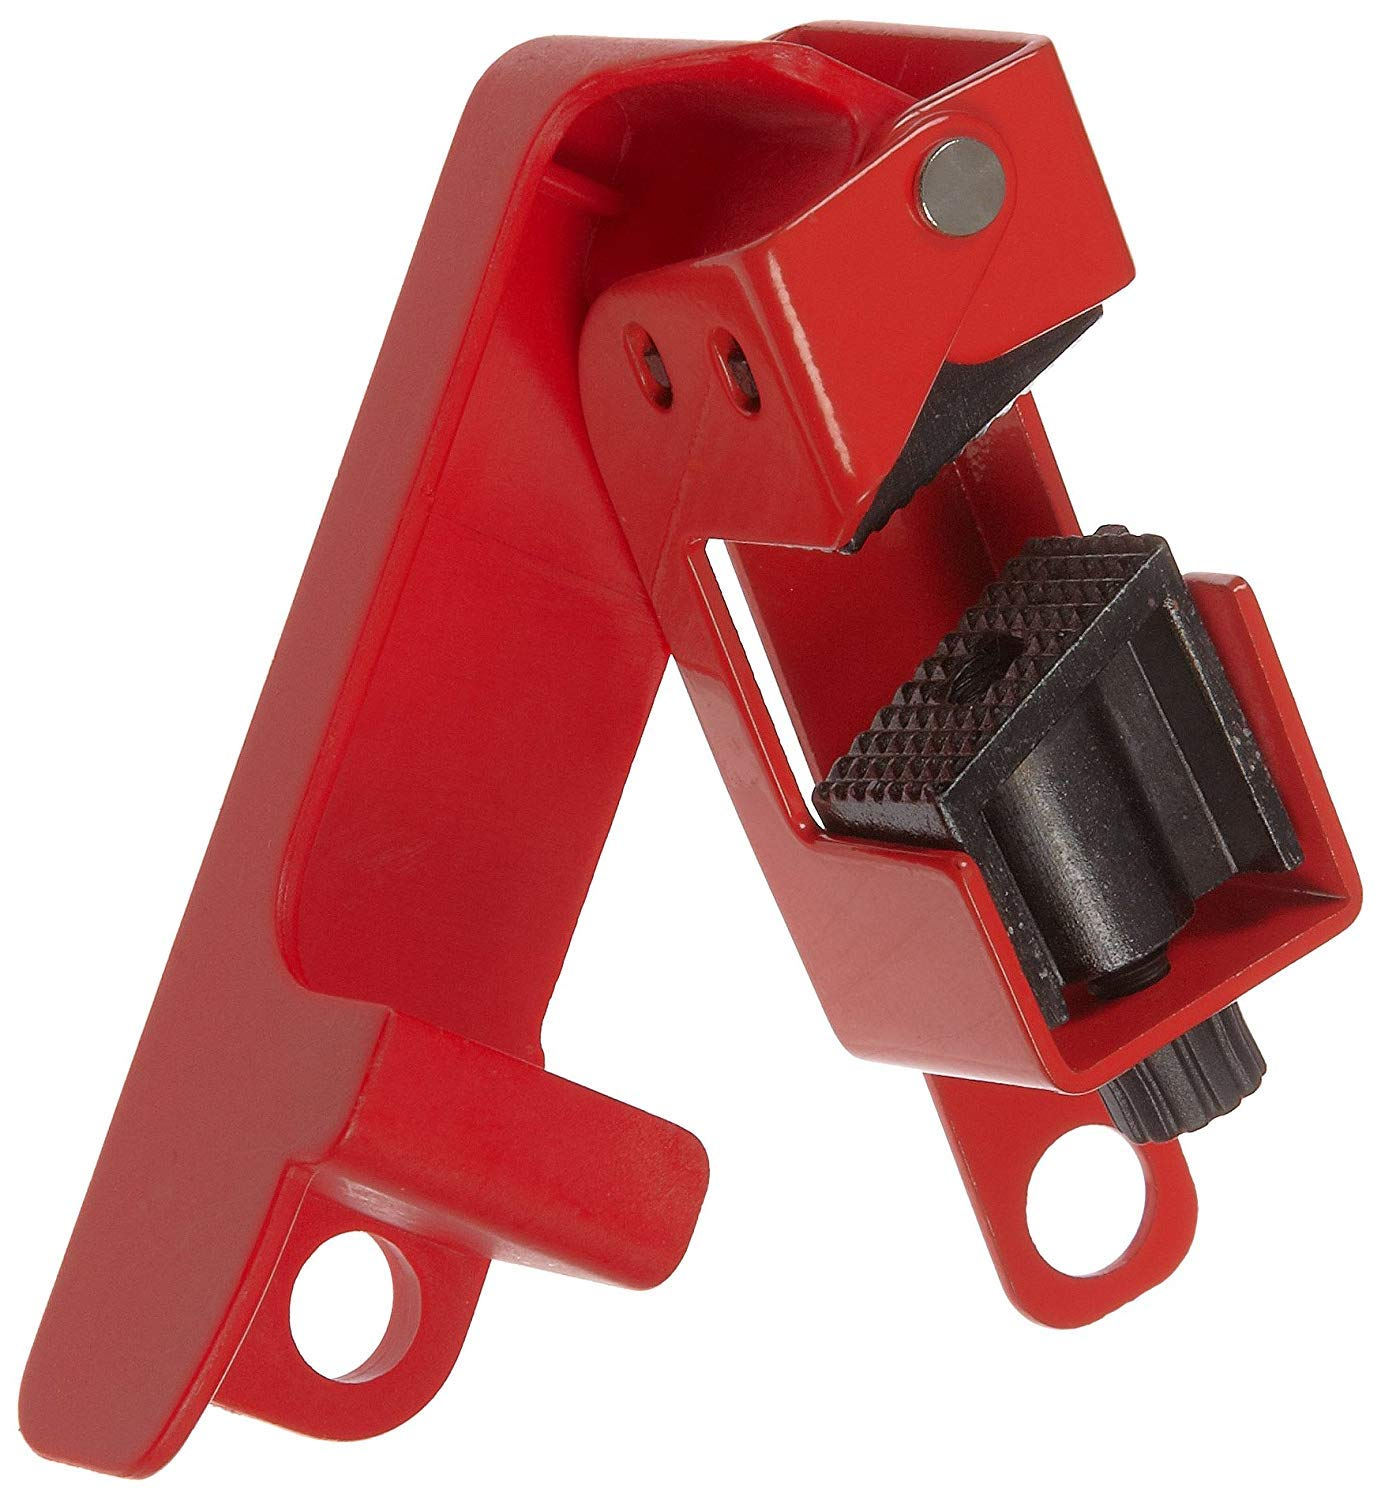 Master Lock 493B Grip Tight Lockout for 120 and 240V Circuit Breakers, 5'' x 2'' x 0'' 5, Red, 5'' x 2'' x 0'' 5 - Pack of 6